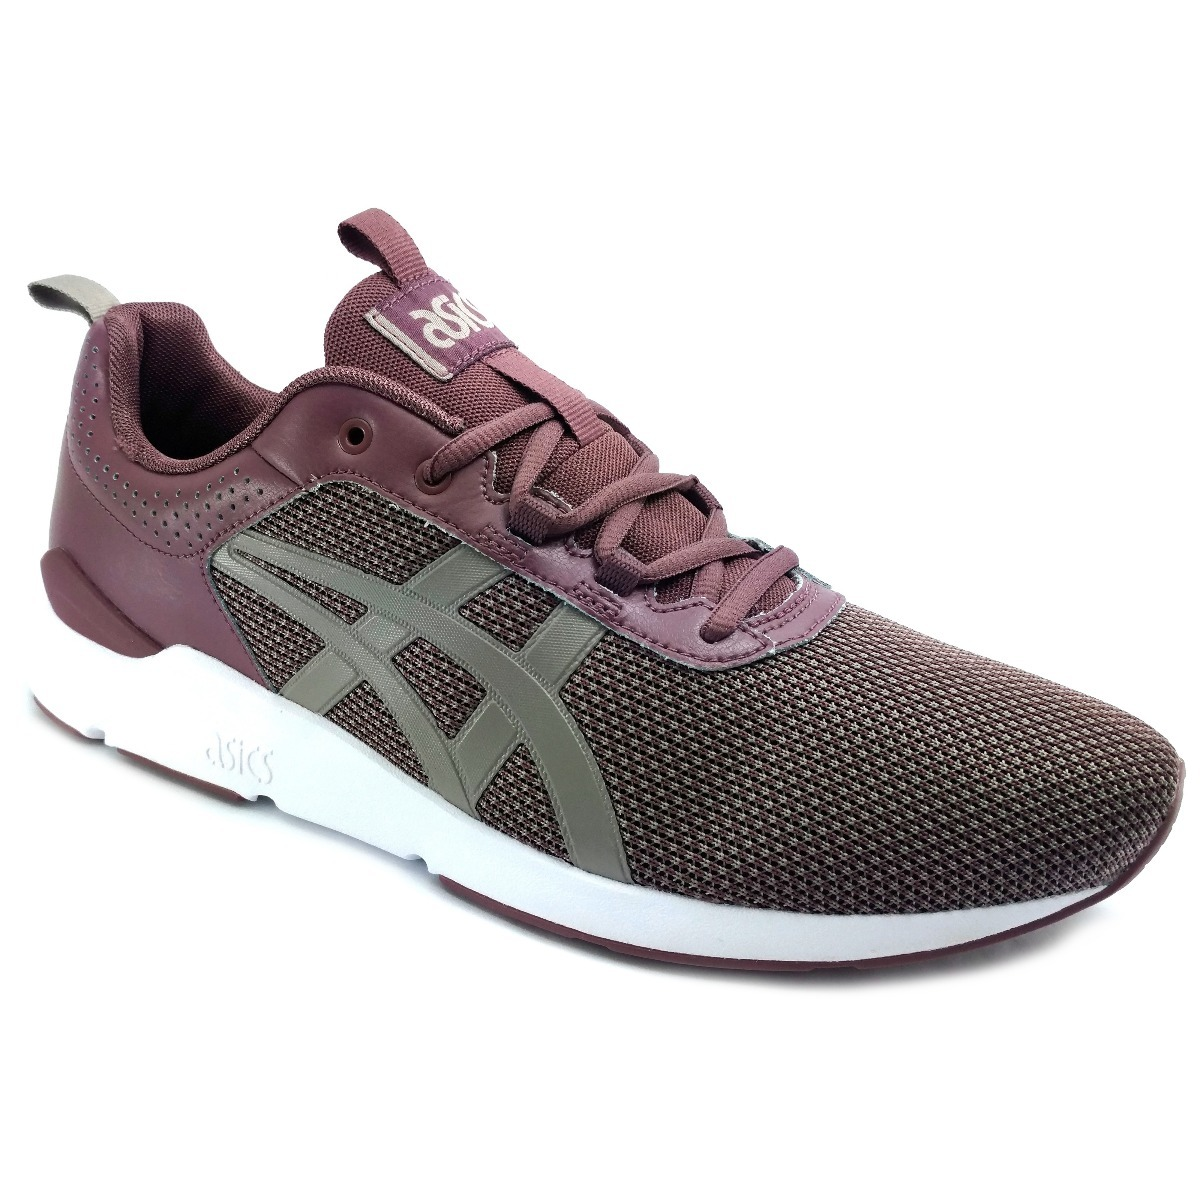 61c4b3d826565 tenis asics gel lyte runner tiger cafe retro gym casual. Cargando zoom.